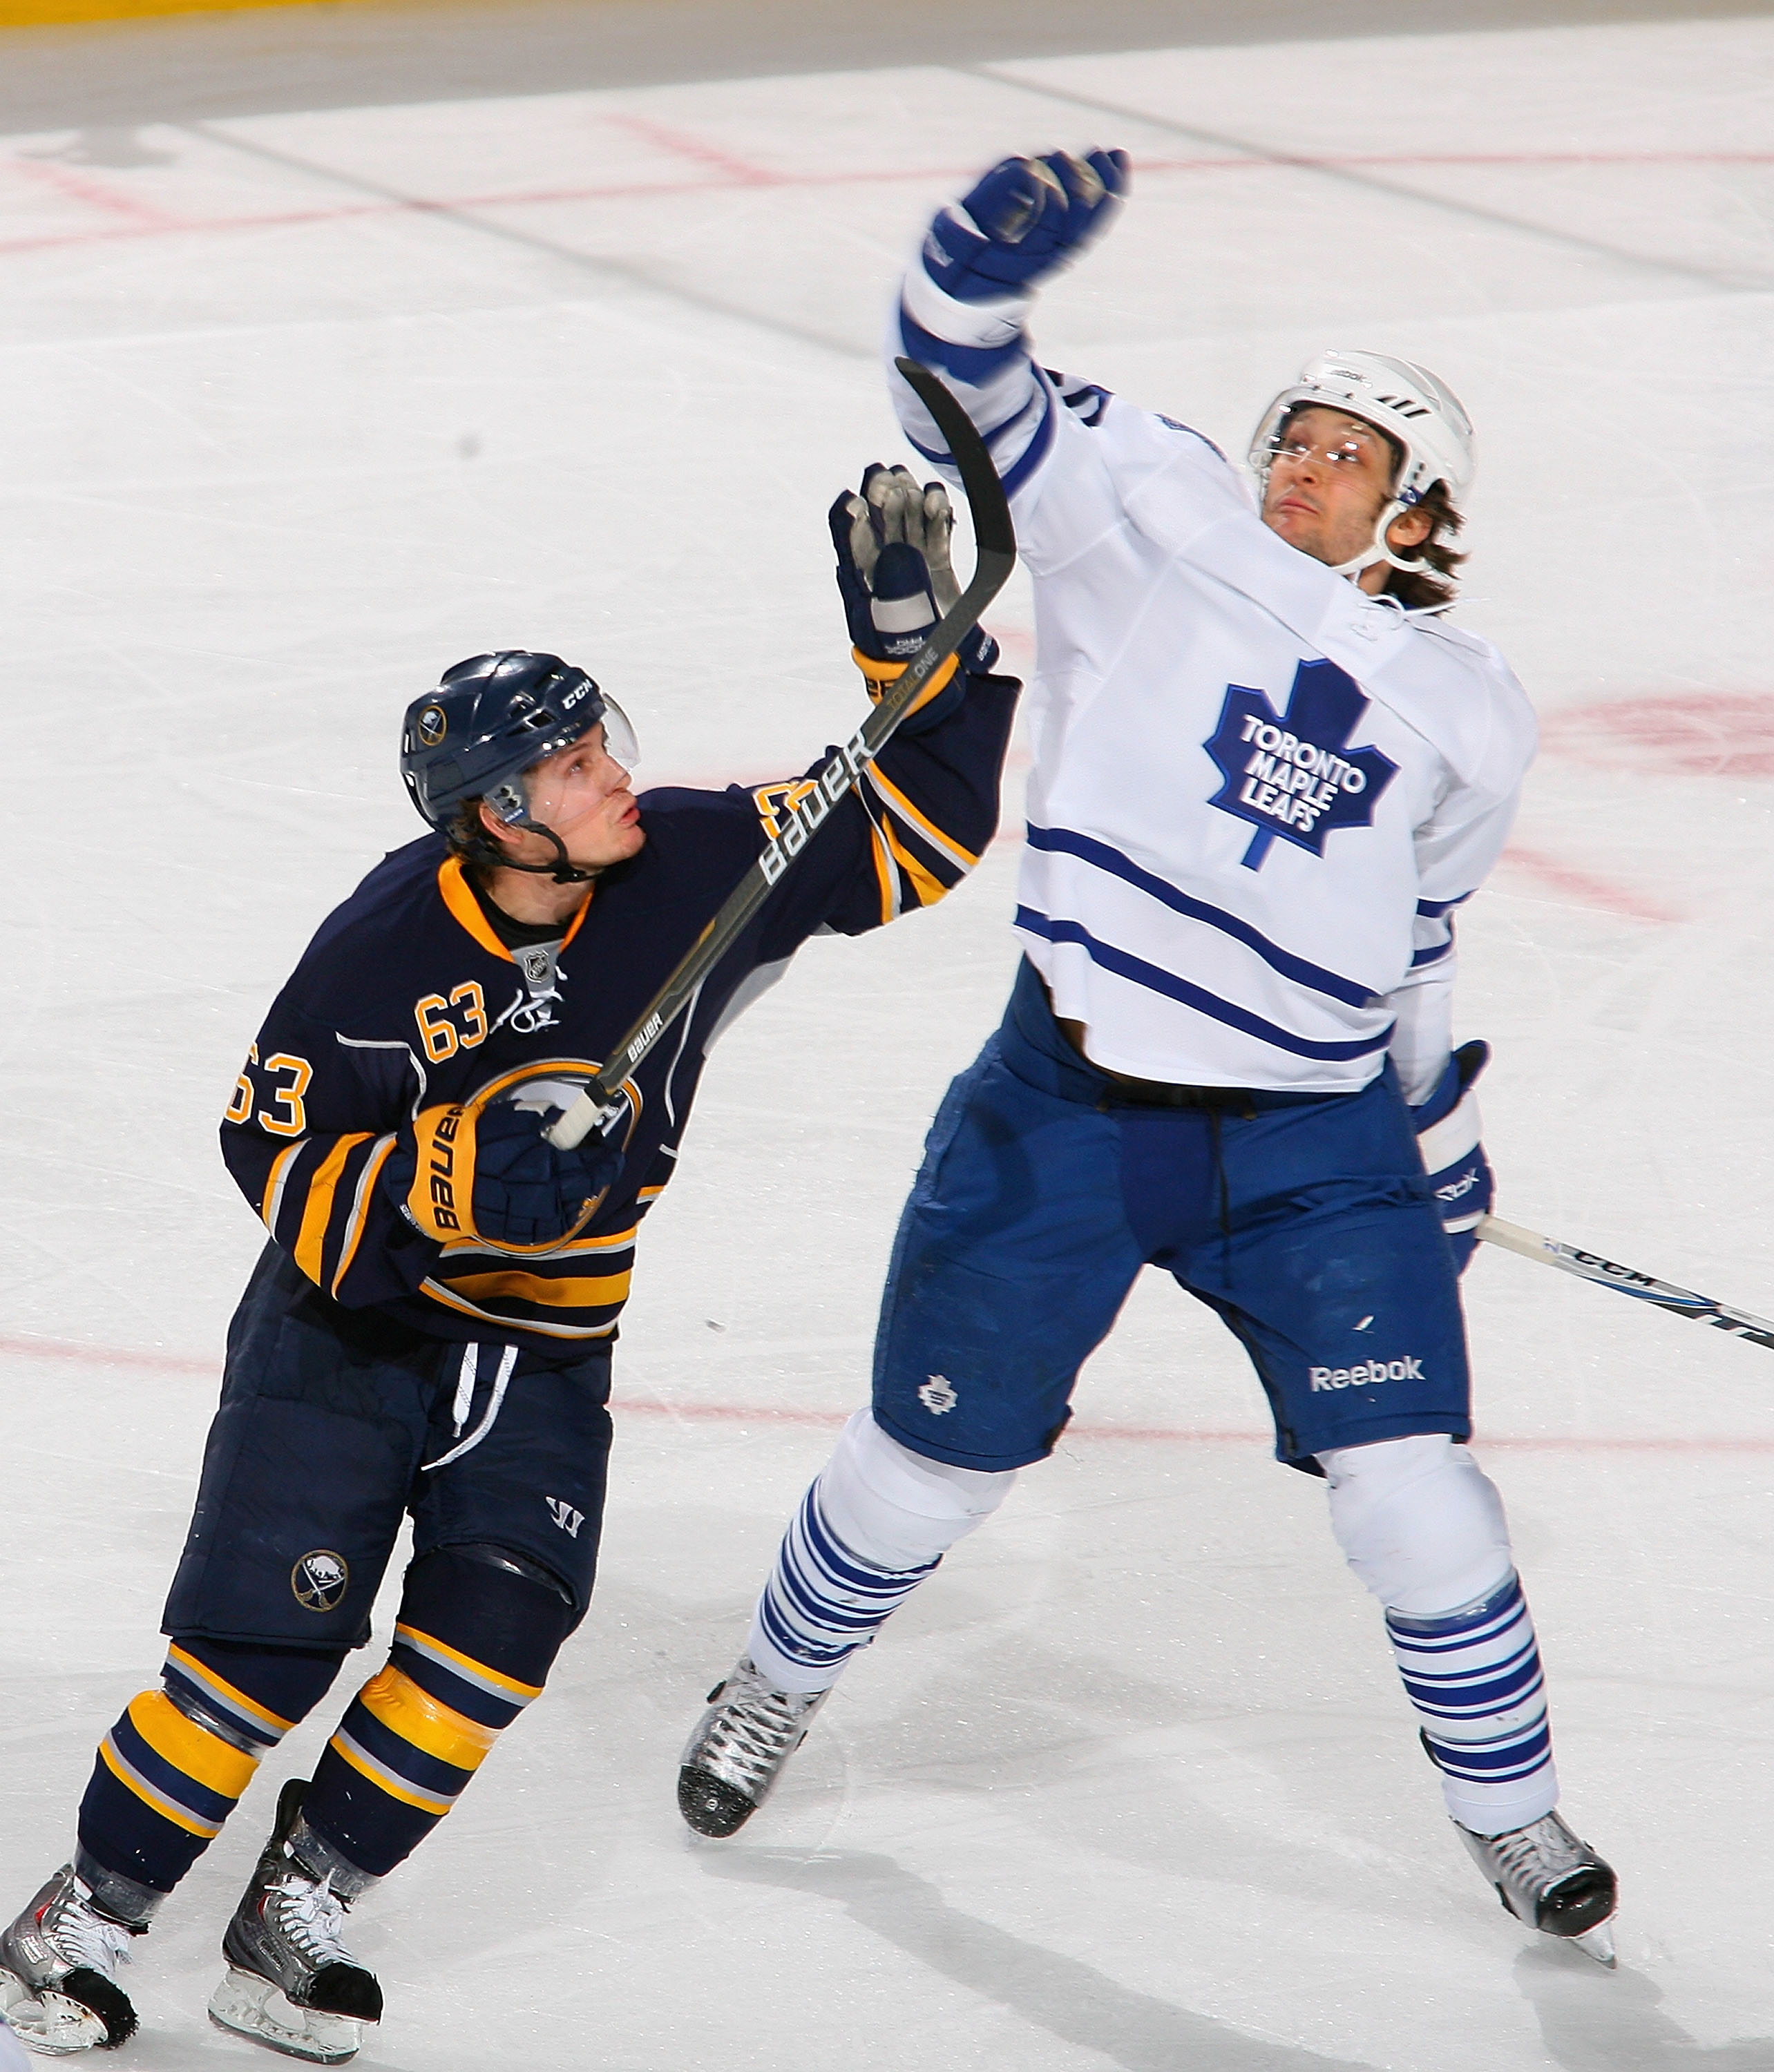 BUFFALO, NY - FEBRUARY 16: Tyler Ennis #63 of the Buffalo Sabres and Christian Hanson #20 of the Toronto Maple Leafs try to knock the puck out of the air at HSBC Arena on February 16, 2011 in Buffalo, New York. Toronto won 2-1. (Photo by Rick Stewart/Gett